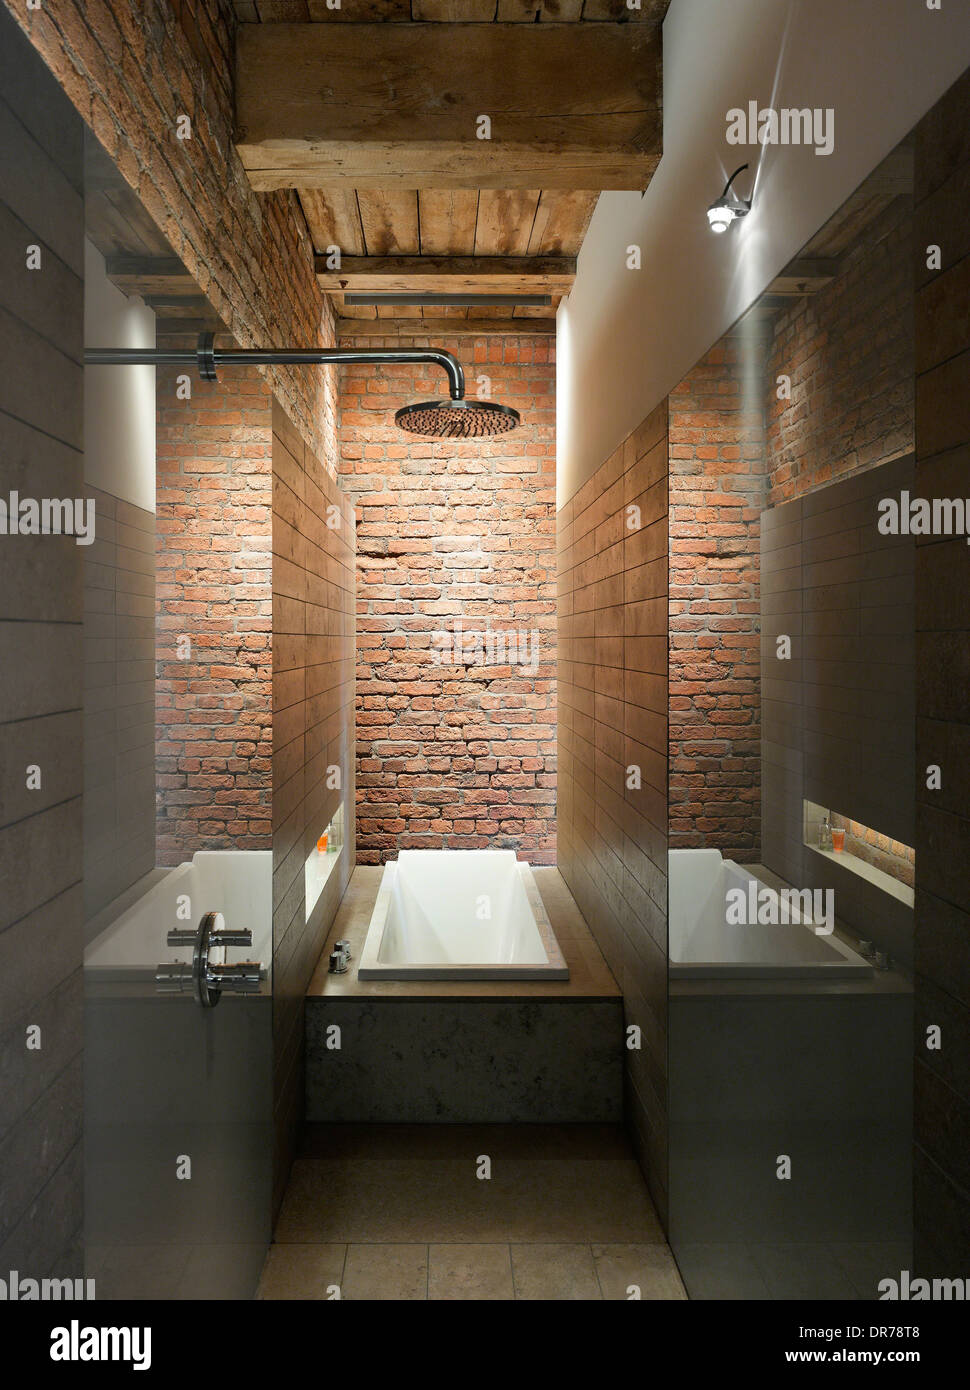 Shower and bathtub in bathroom, Albert Mill, Manchester, Greater ...